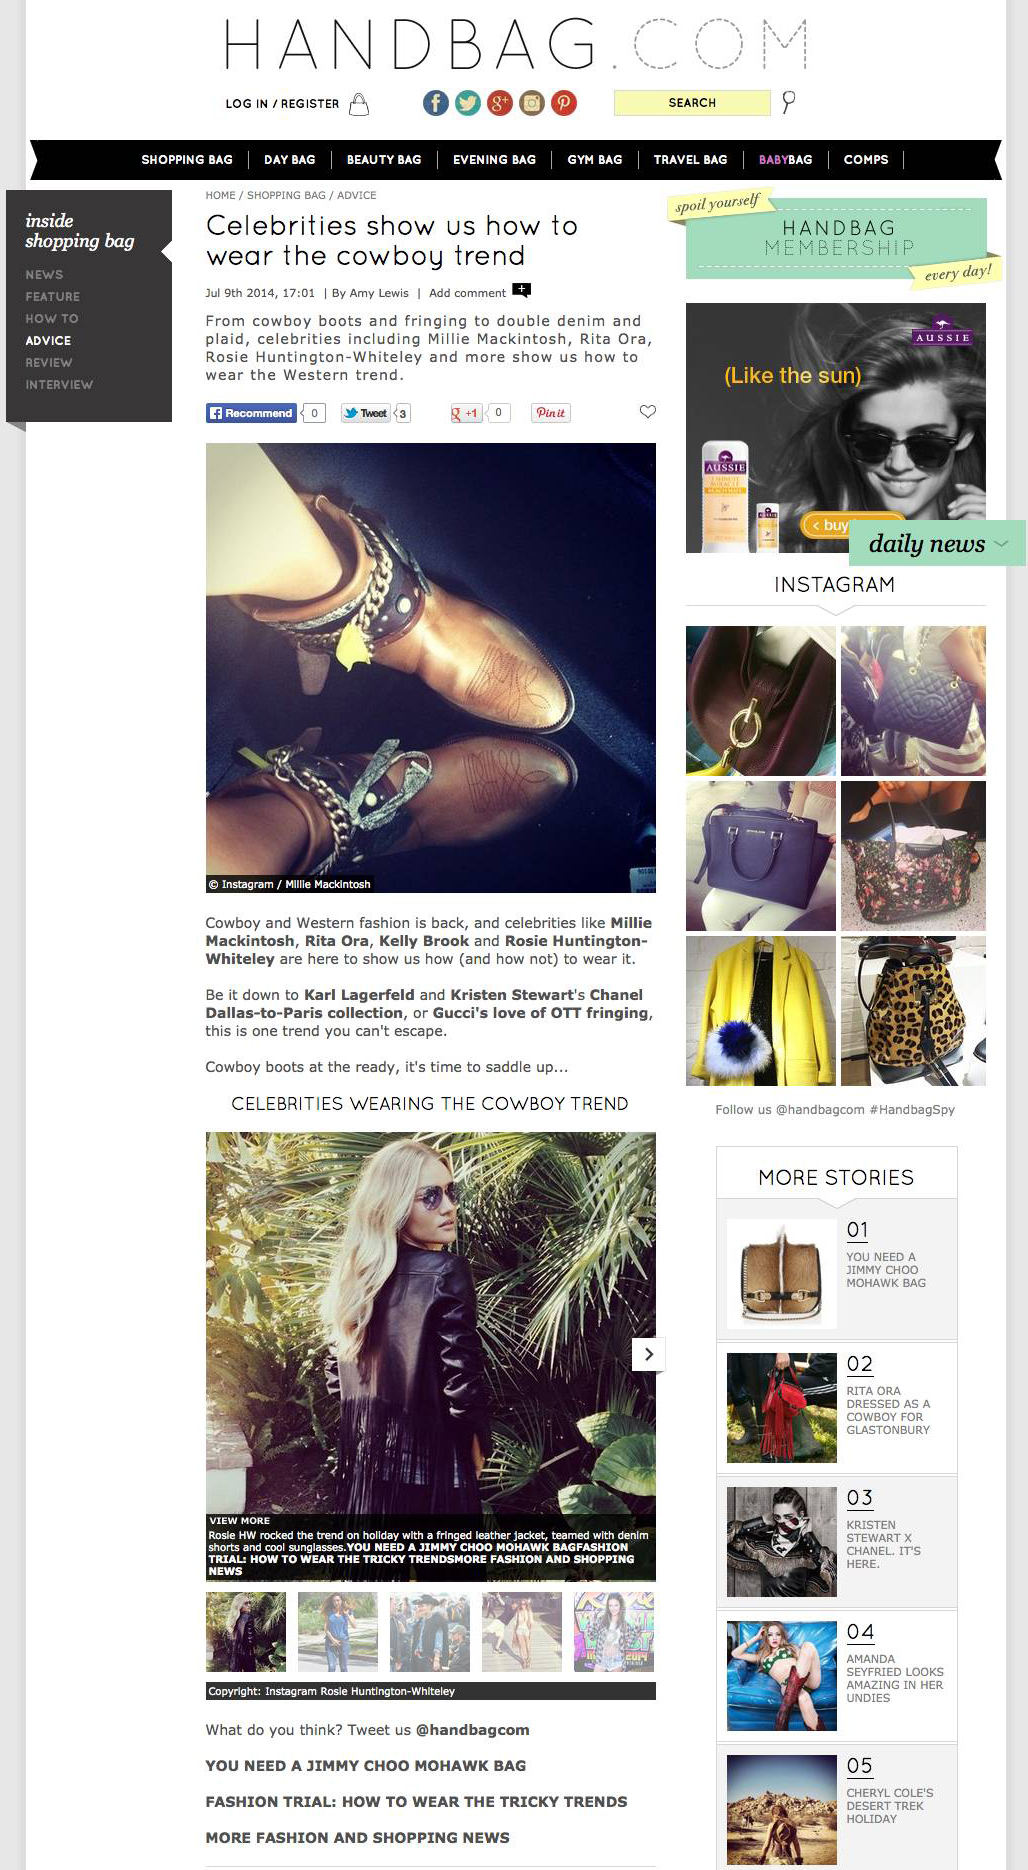 Celebrities_show_us_how_to_wear_the_cowboy_trend_-_Shopping_Bag_Advice_-_handbag.com_-_2014-07-30_11.12.26.png